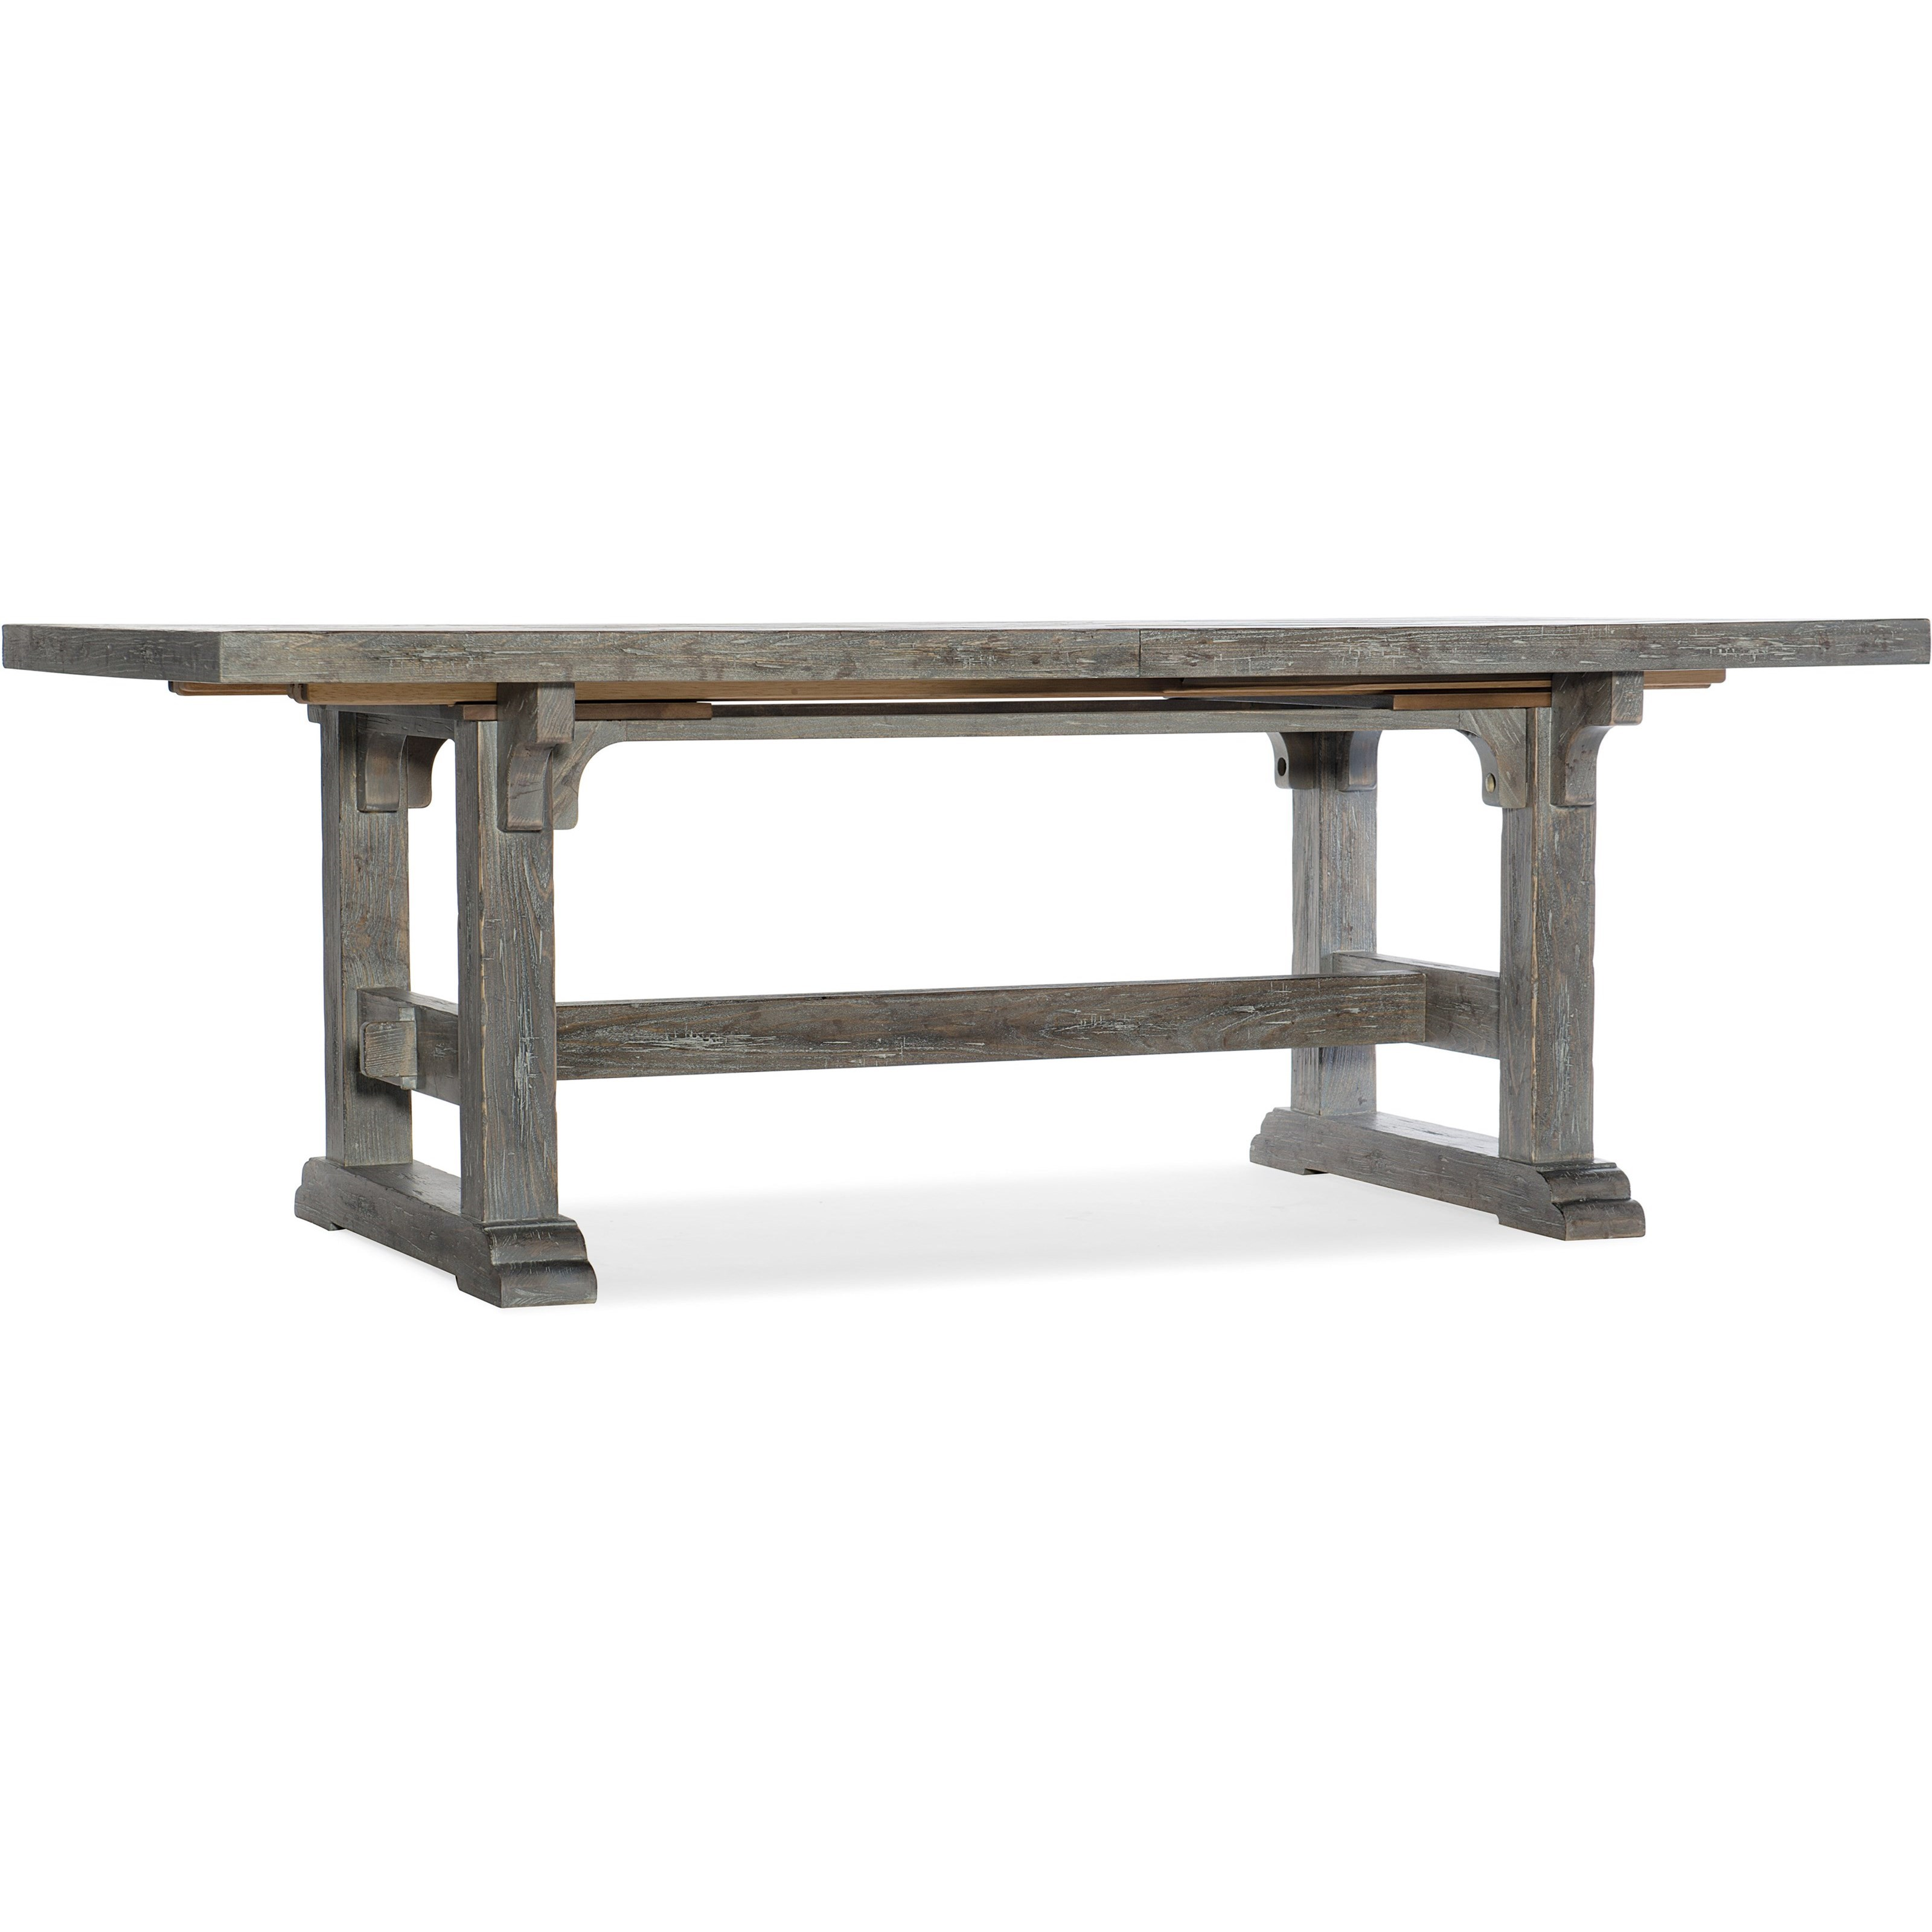 Beaumont Rectangular Dining Table w/ 2 22in Leaves by Hooker Furniture at Alison Craig Home Furnishings